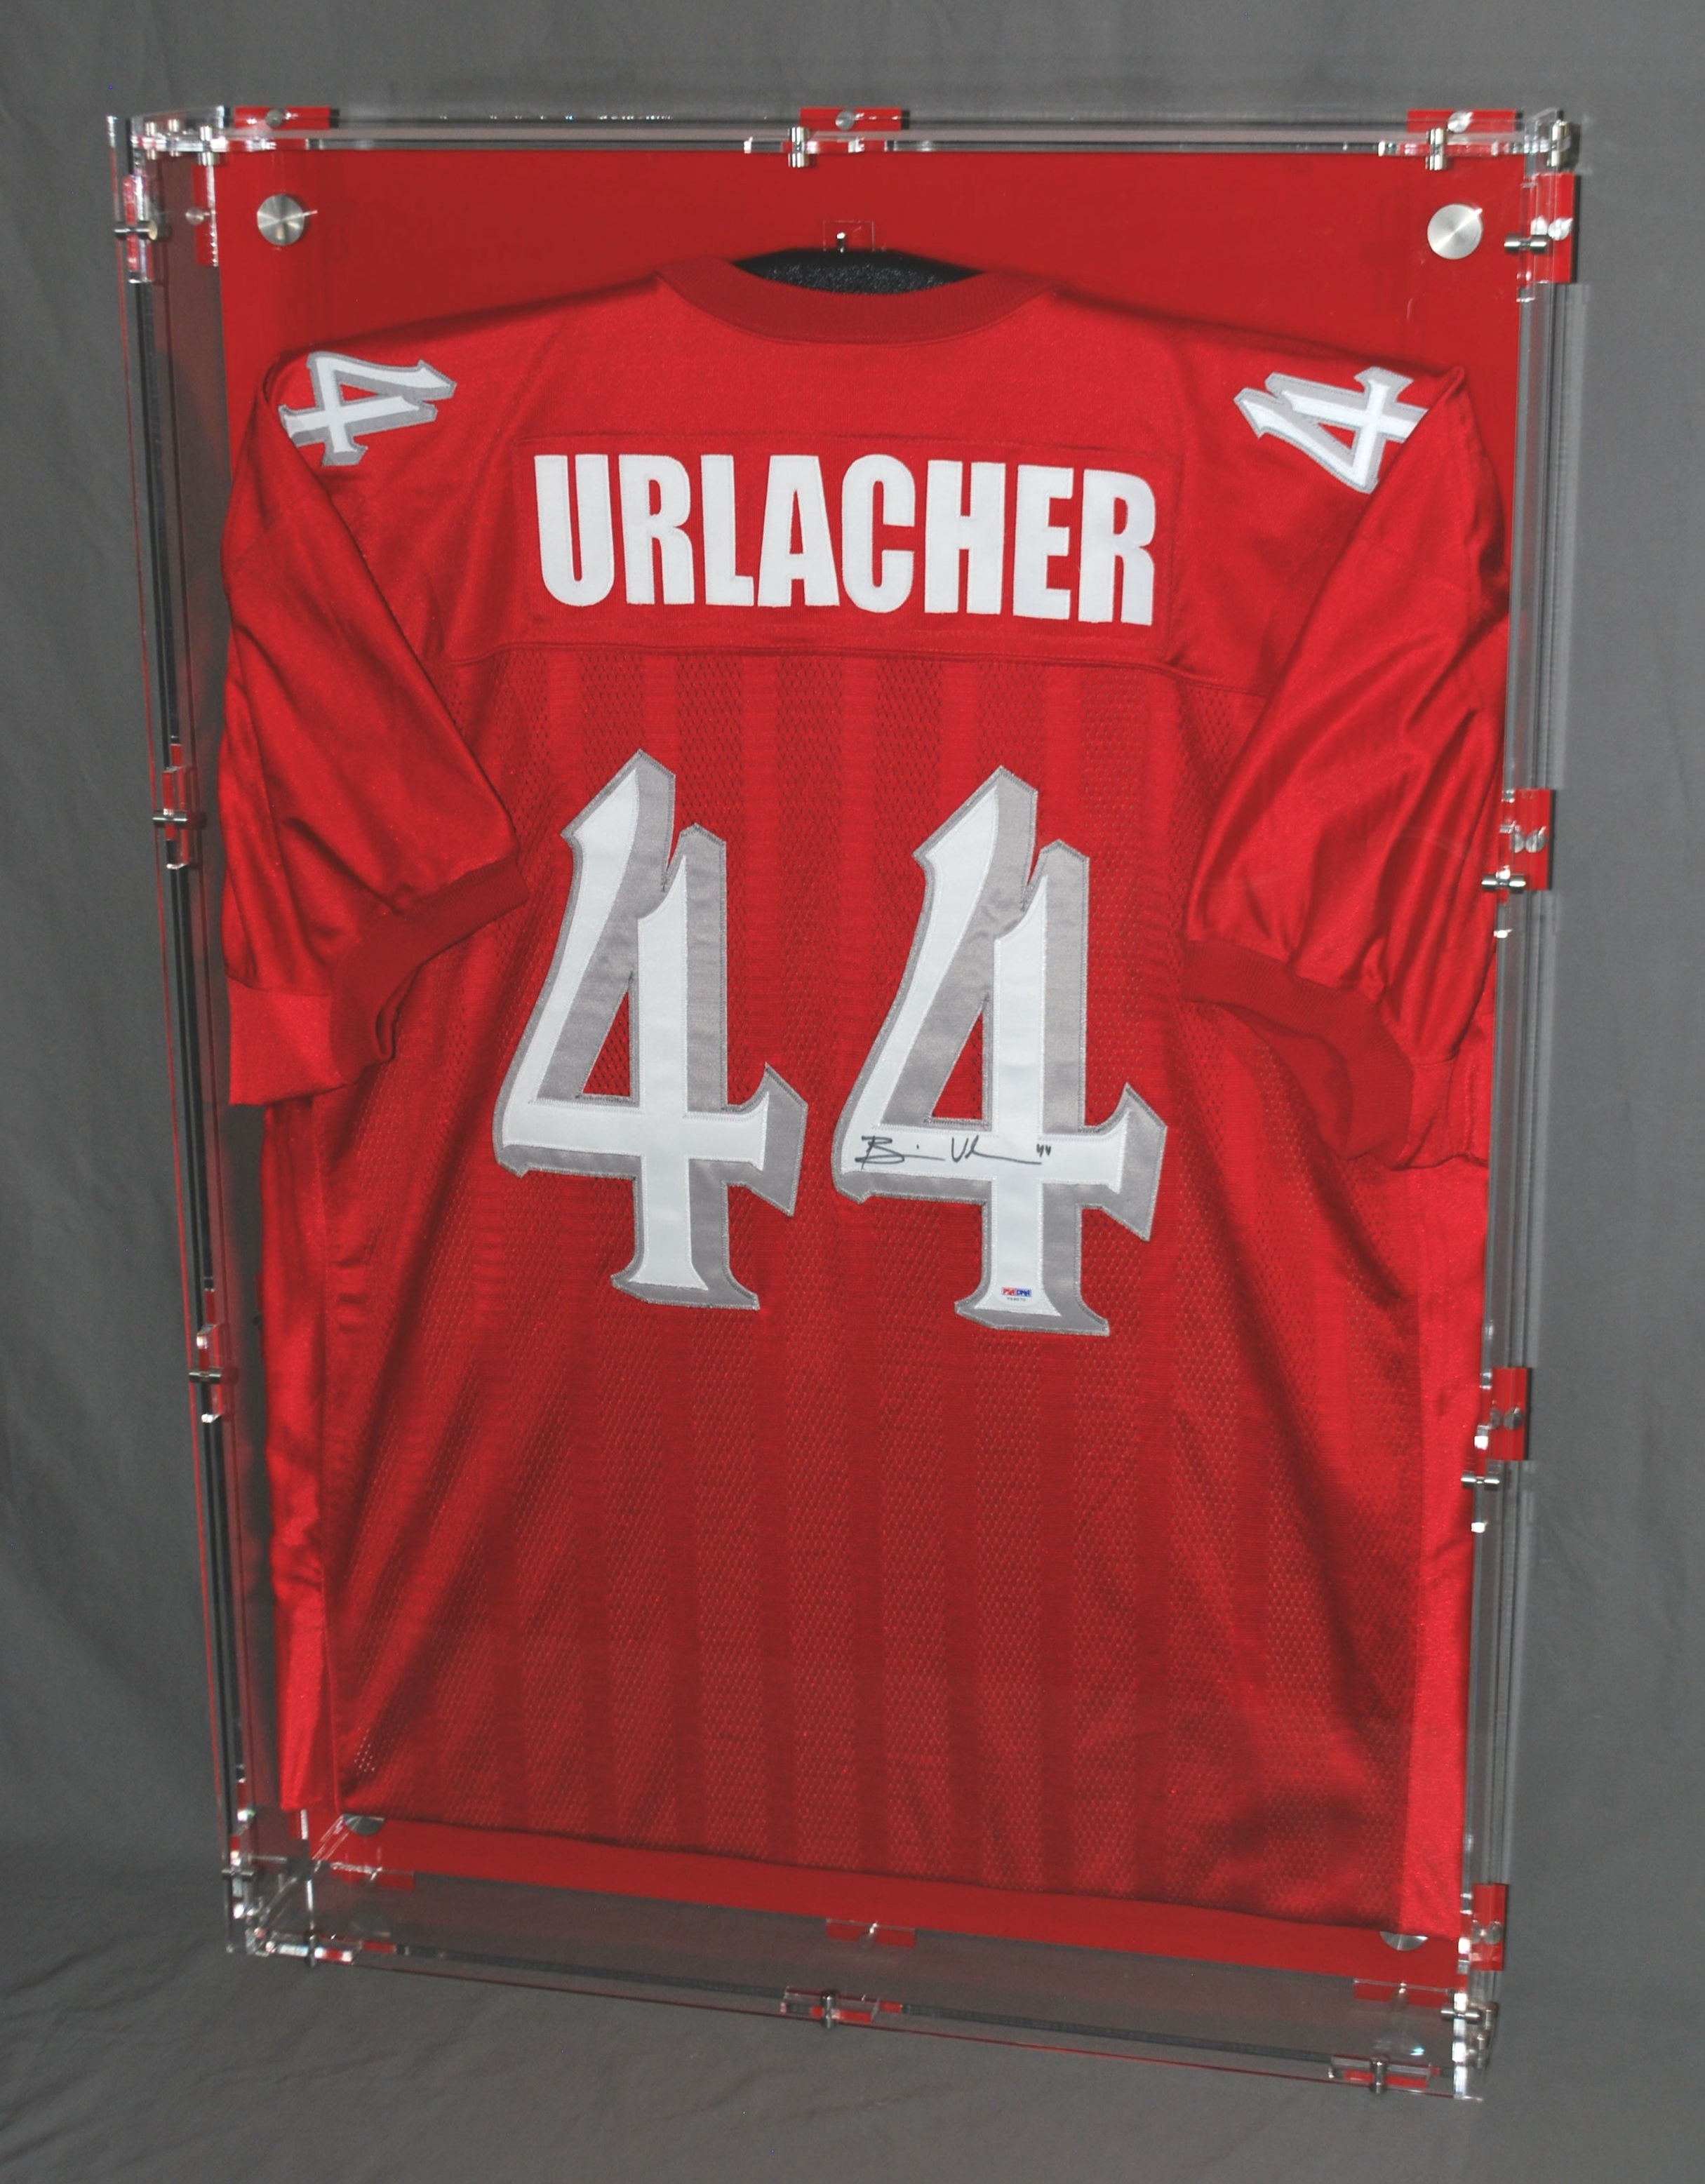 """Jersey Case - 28""""x 40""""x 3.5"""",  clear case mounts from SS corner hardware,  can be custom-etched per customer desires.  Contact us for pricing information."""